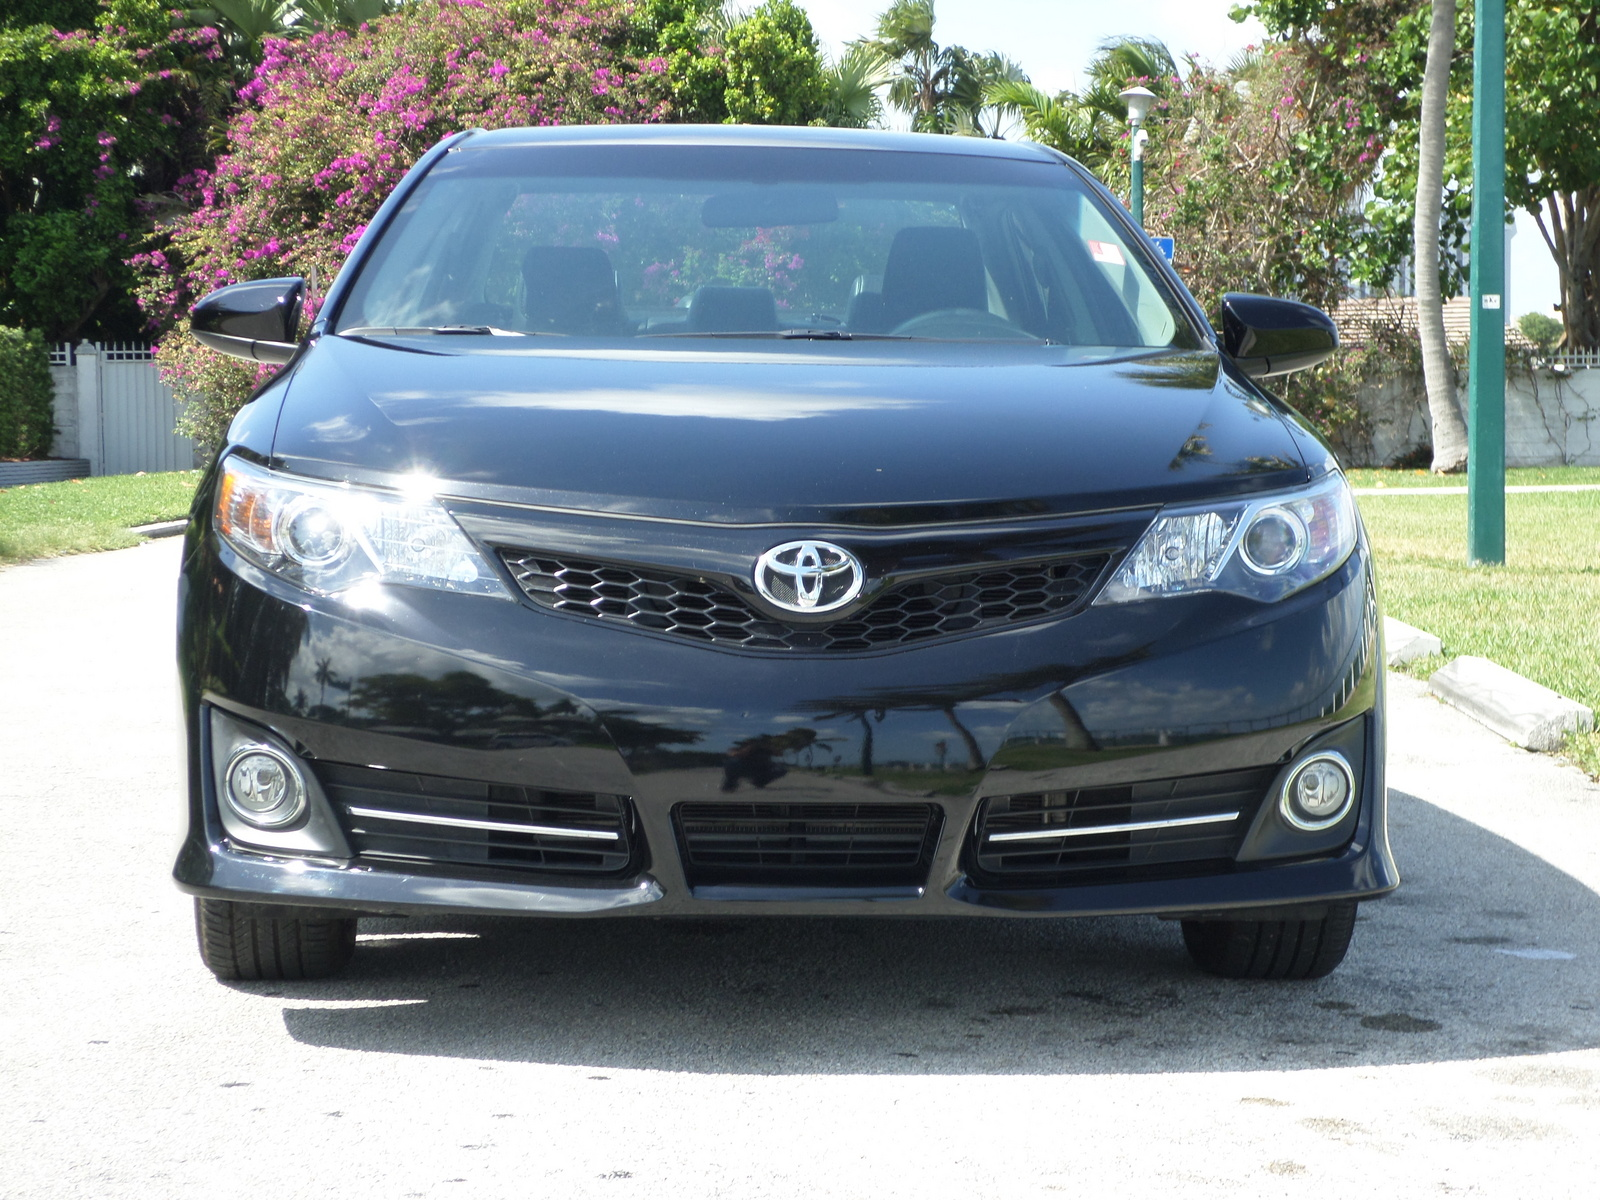 2014 toyota camry pictures cargurus. Black Bedroom Furniture Sets. Home Design Ideas